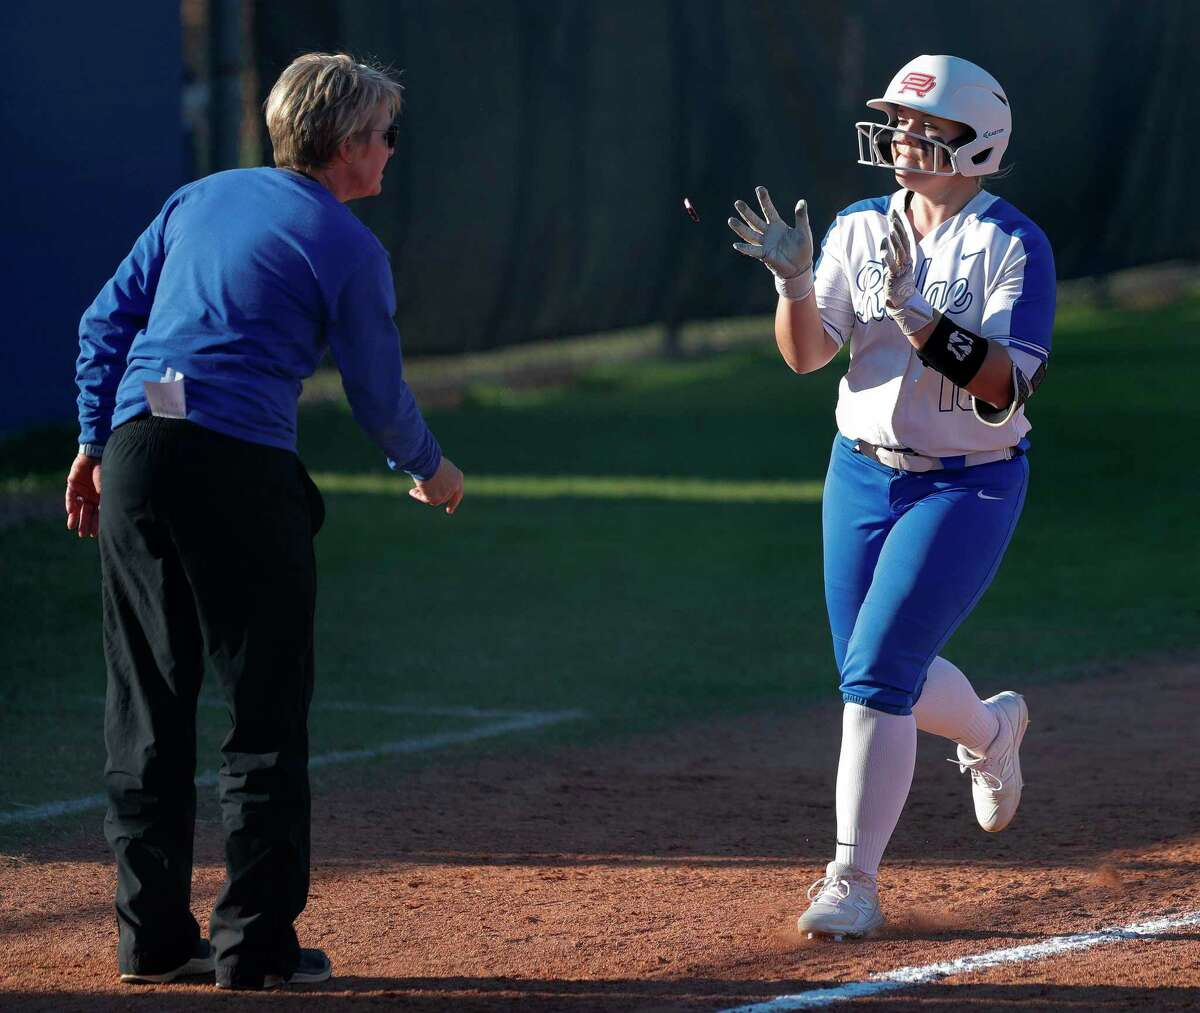 Oak Ridge head coach Stephani Rougeau had eight of her players named to all-district teams, including a first-team selection for Kennedy Reynolds, after the Lady War Eagles finished the season ranked No. 1 in Class 6A.